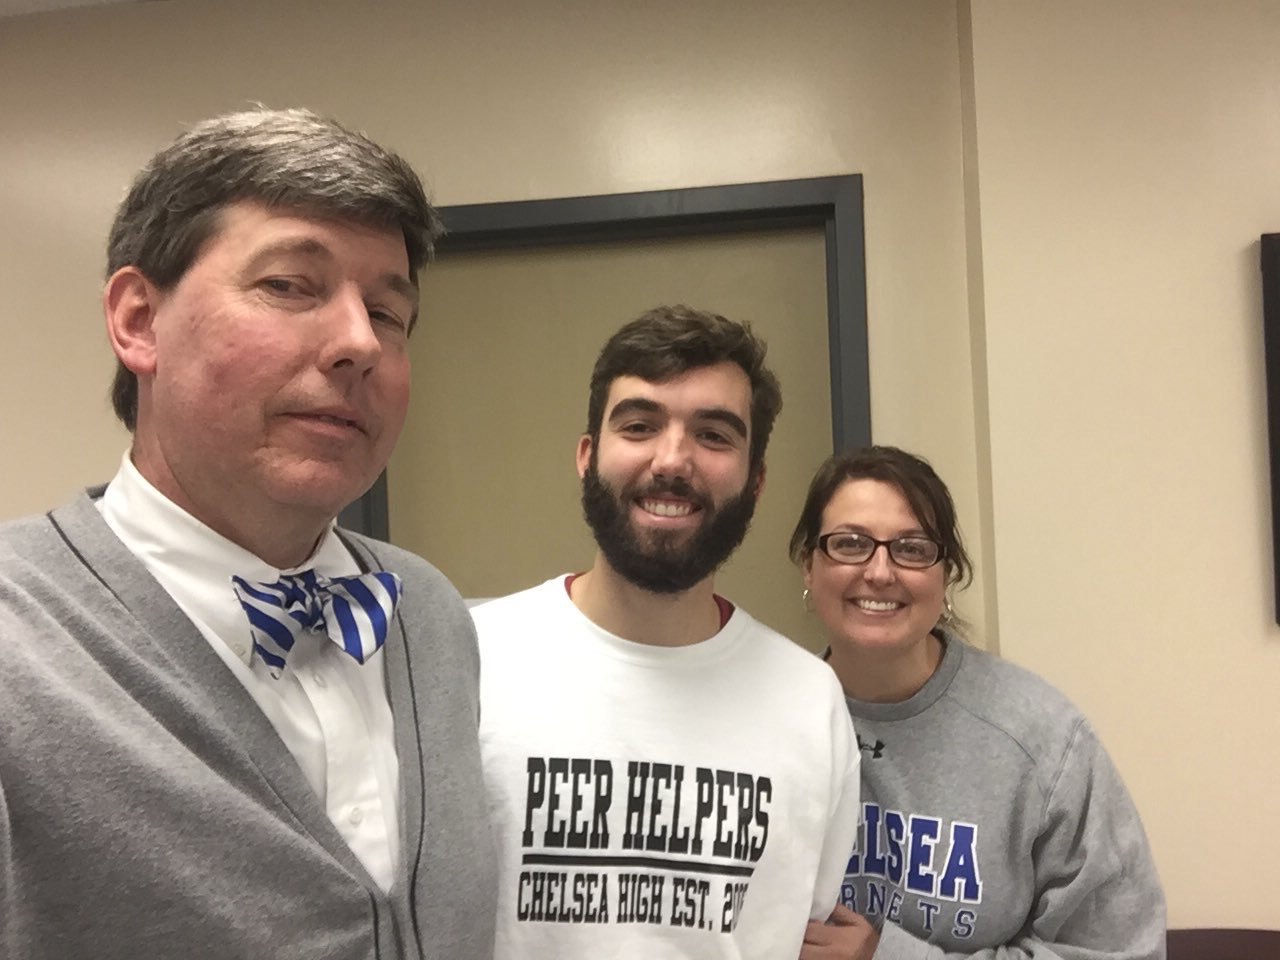 Evan with Mr. Trucks and Ms. Fowler.